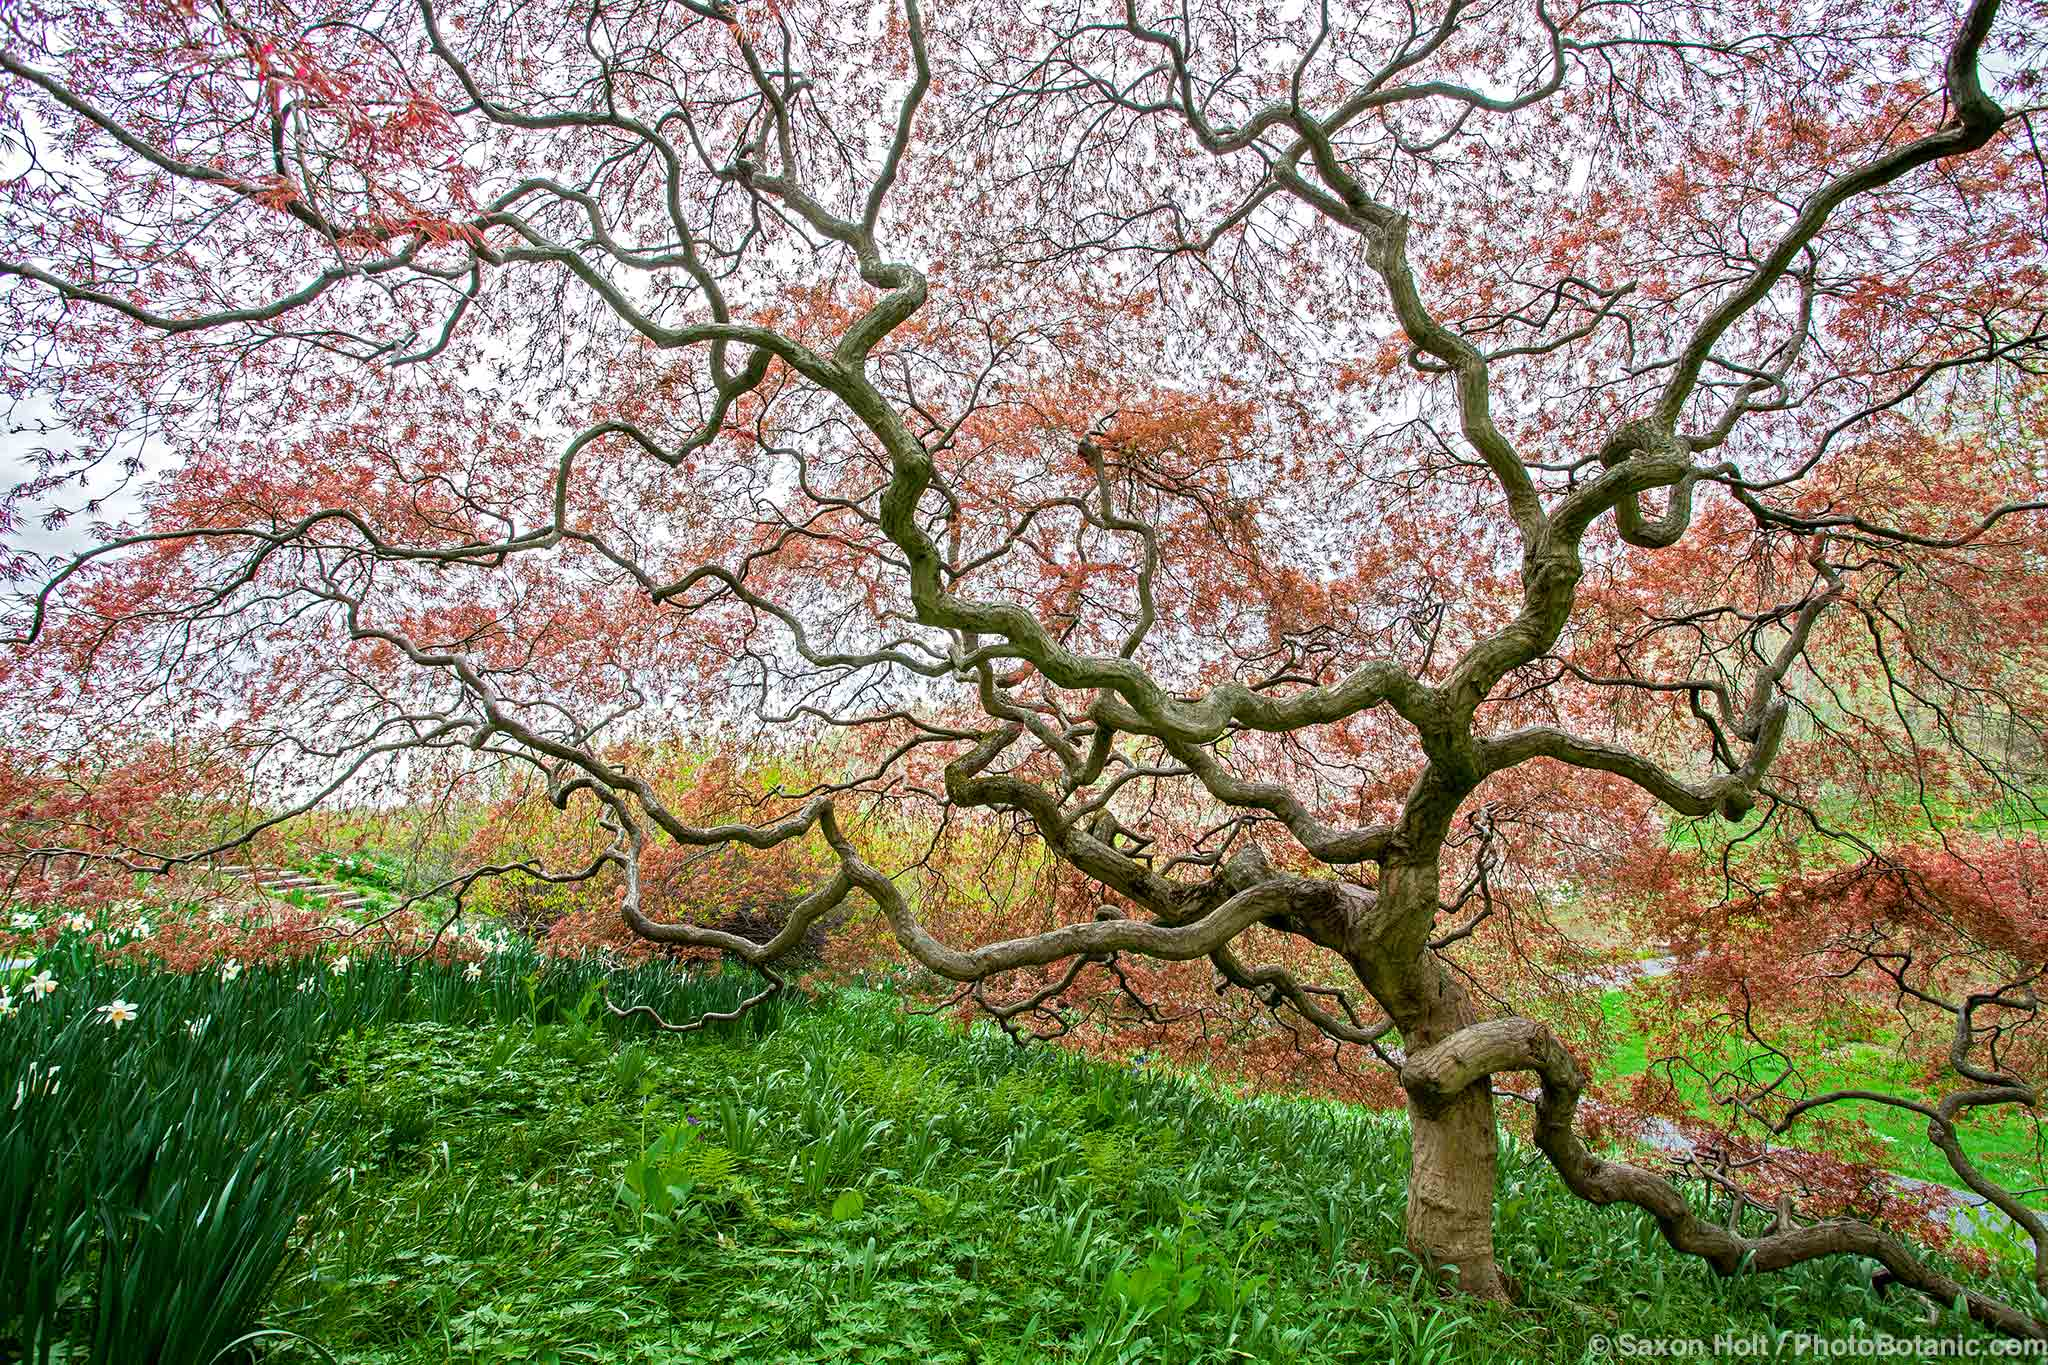 Acer palmatum dissectum atropurpureum, Red Cutleaf Japanese Maple tree, spring leaves unfolding, Winterthur Garden